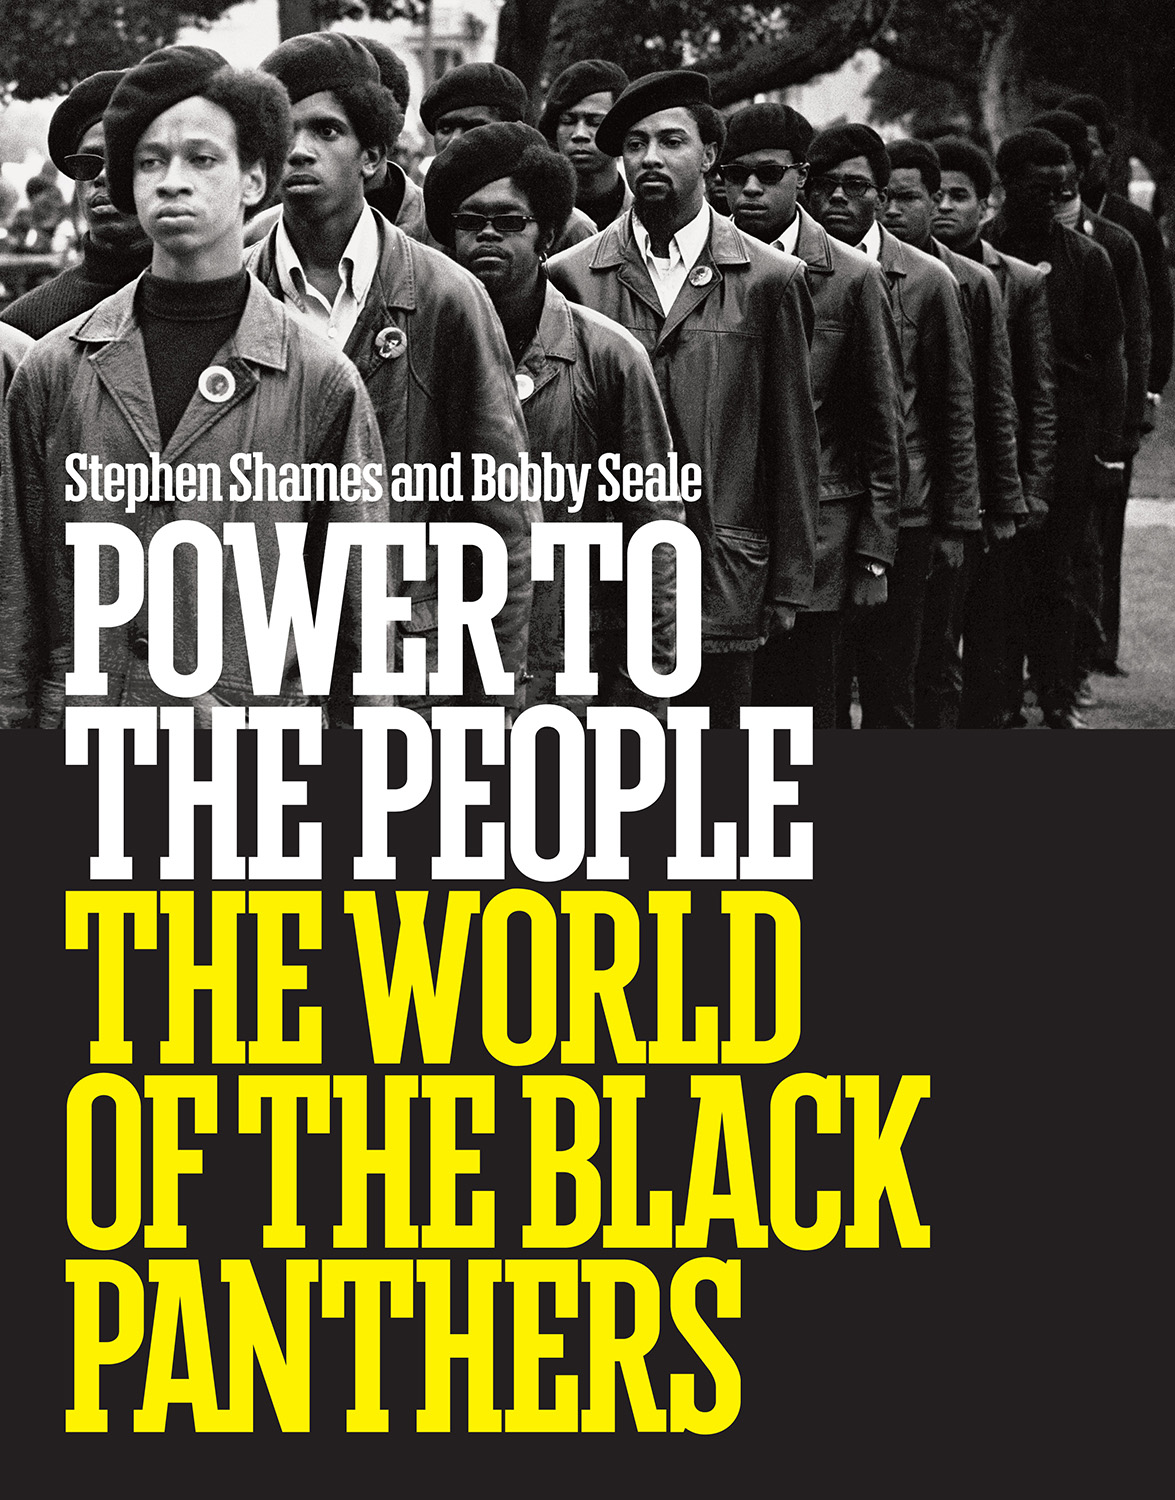 ©POWER TO THE PEOPLE: THE WORLD OF THE BLACK PANTHERS photographs by Stephen Shames; Text by Bobby Seale published by Abrams www.abramsbooks.com